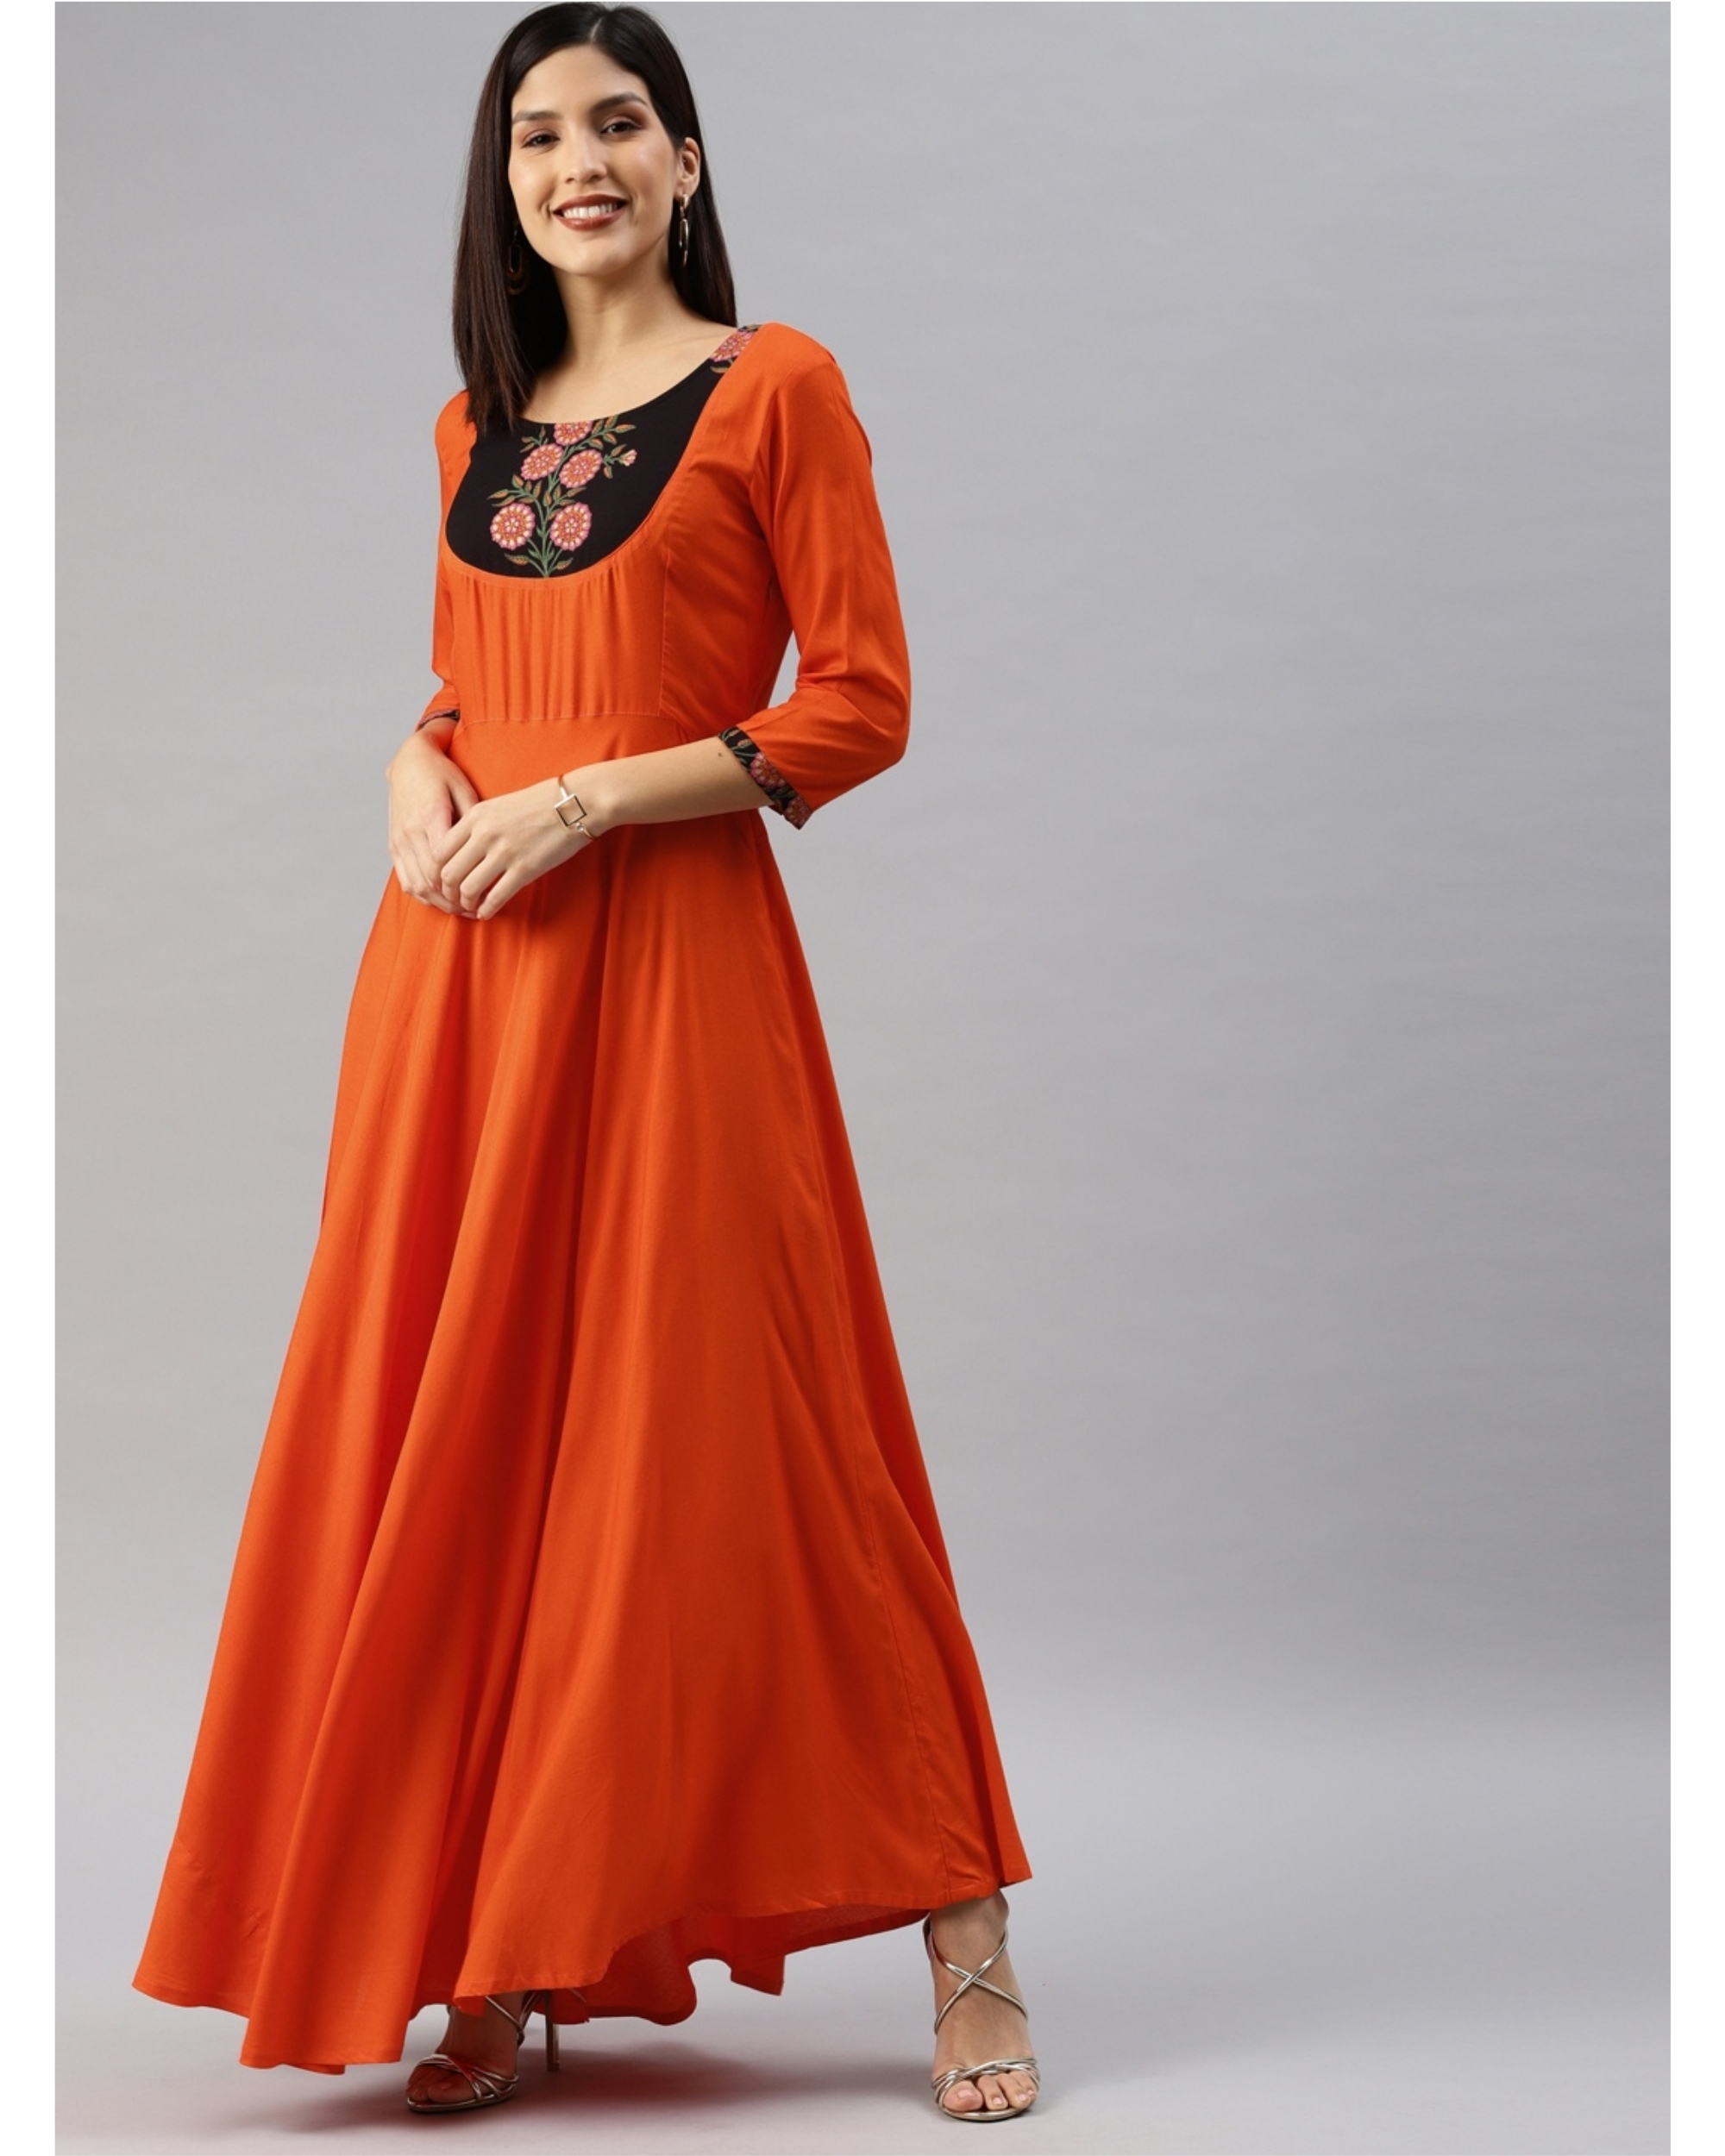 Orange fit and flare dress with yoke